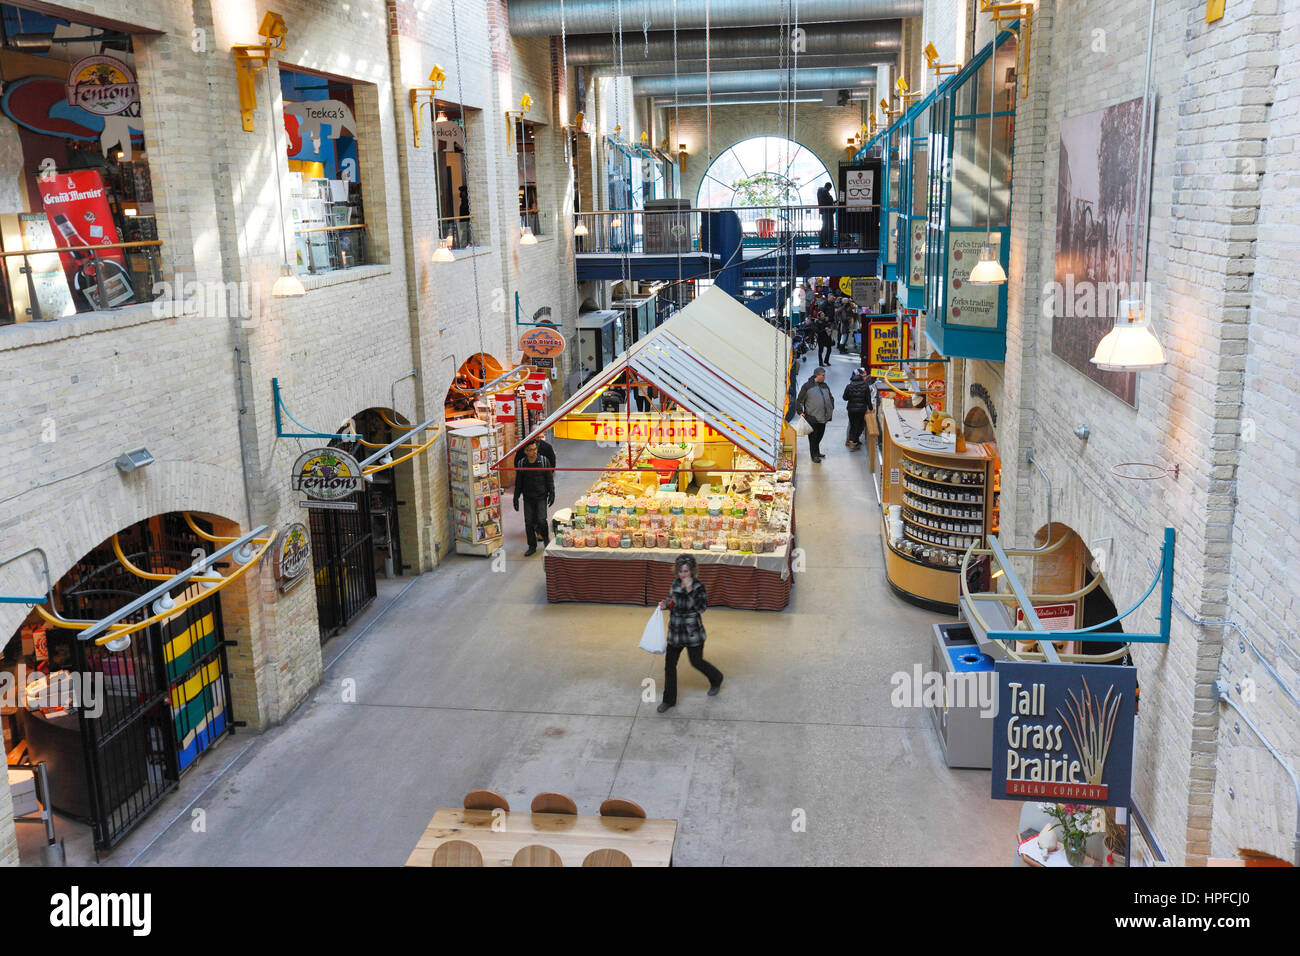 Interior of The Forks Market, The Forks, National Historic Site, Winnipeg, Manitoba - Stock Image